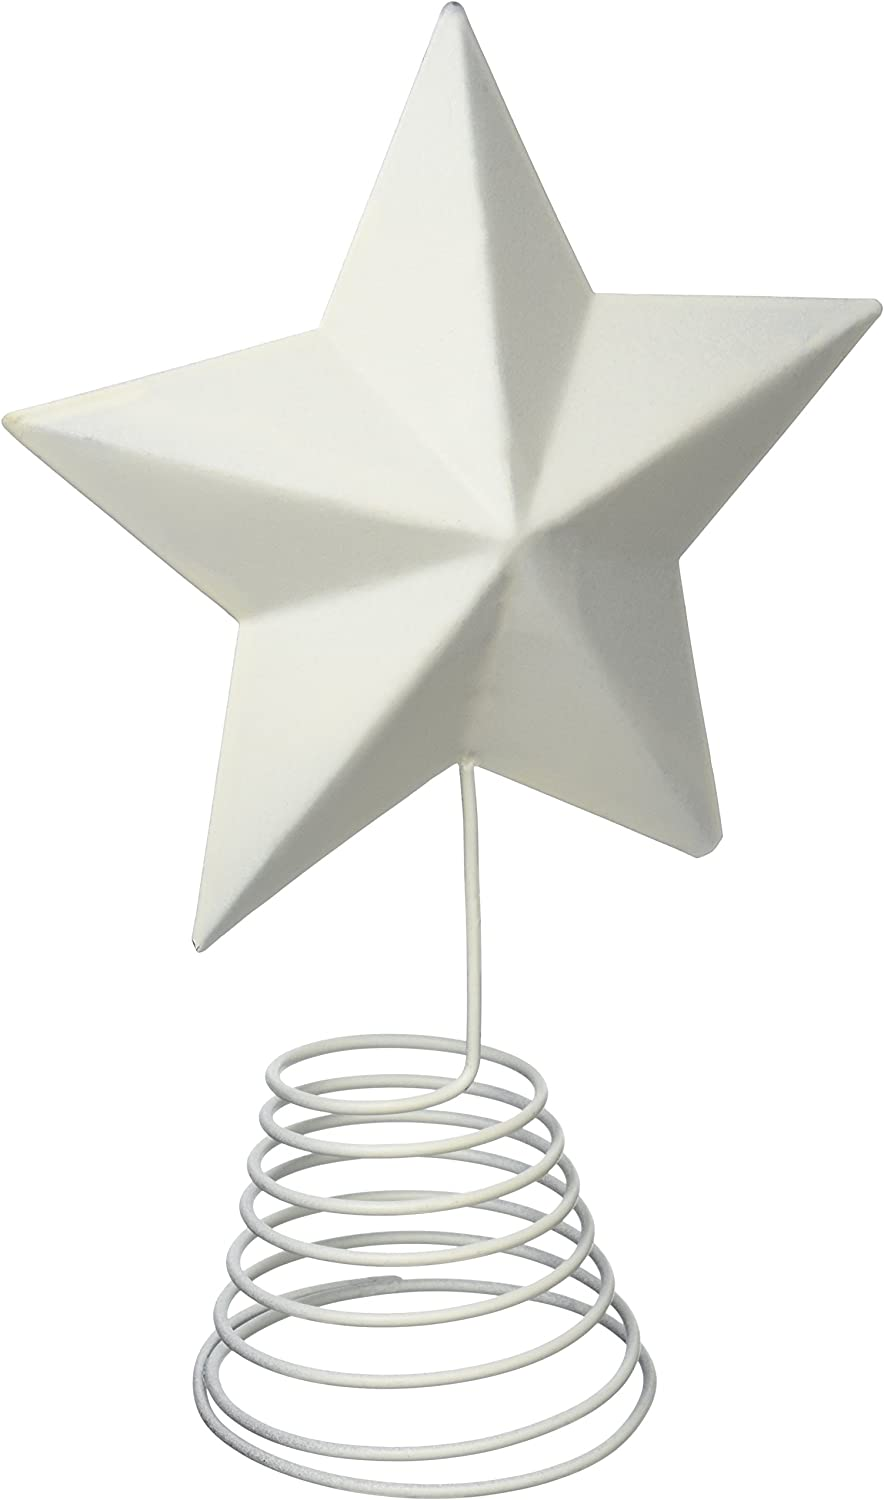 Craft Outlet Inc Craft Outlet 14 Rustic Tin Star On Stick Set of 6 Brown